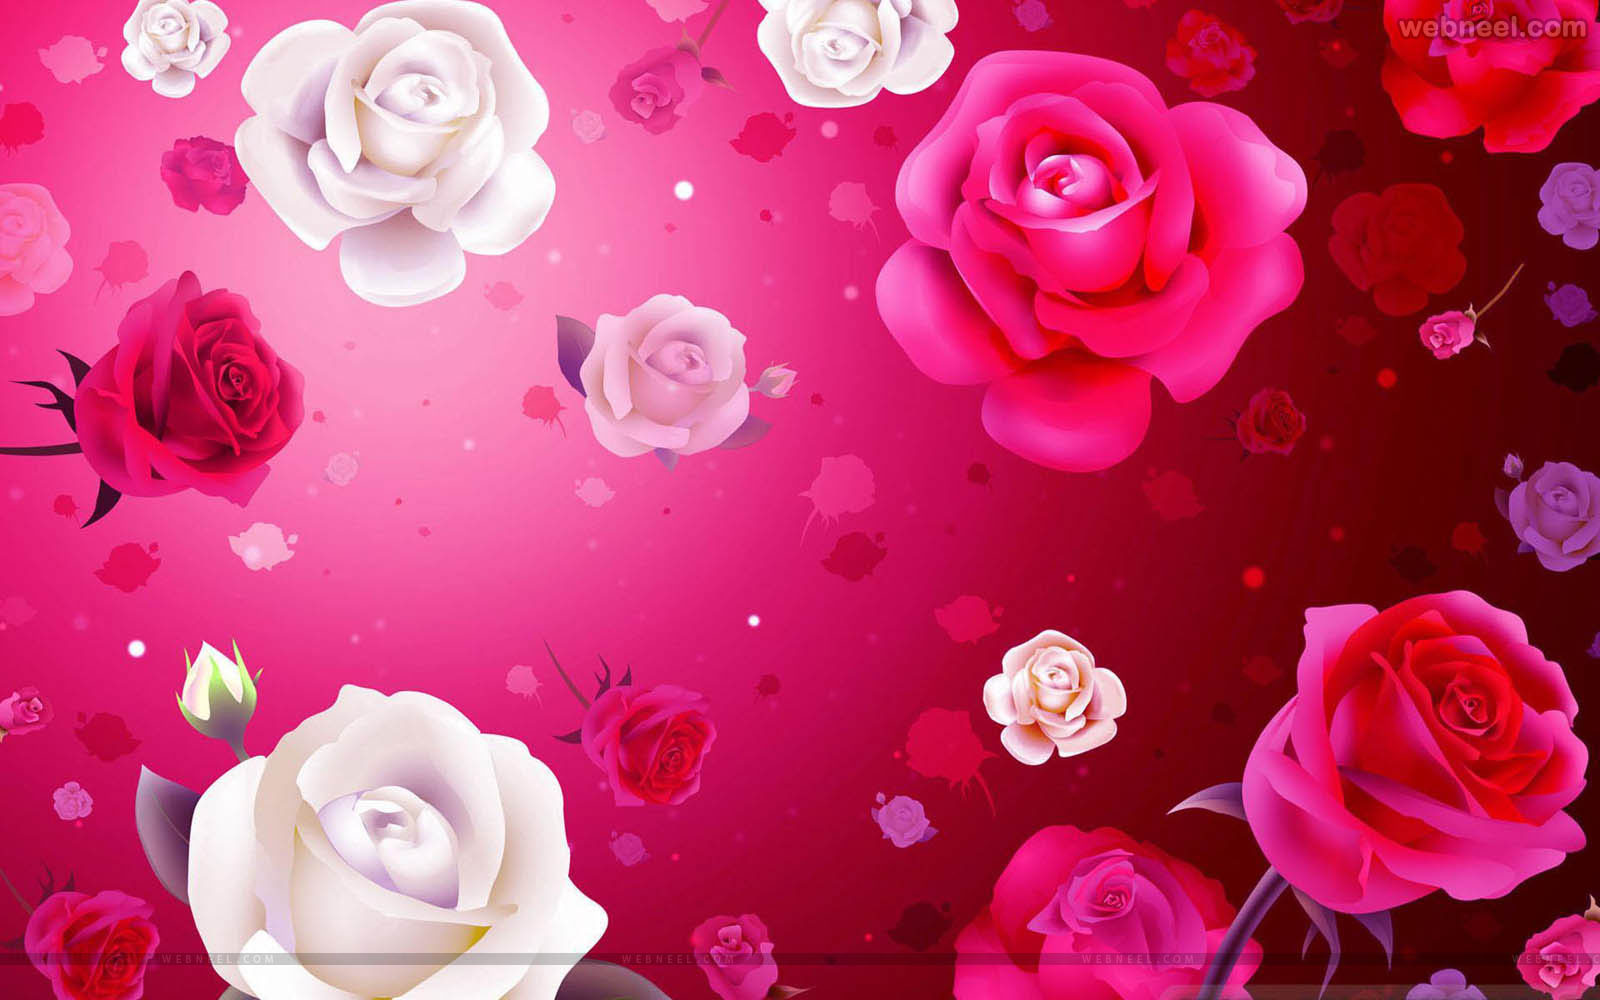 Wallpaper images - Valentines Day Wallpaper Valentine S Day Wallpaper